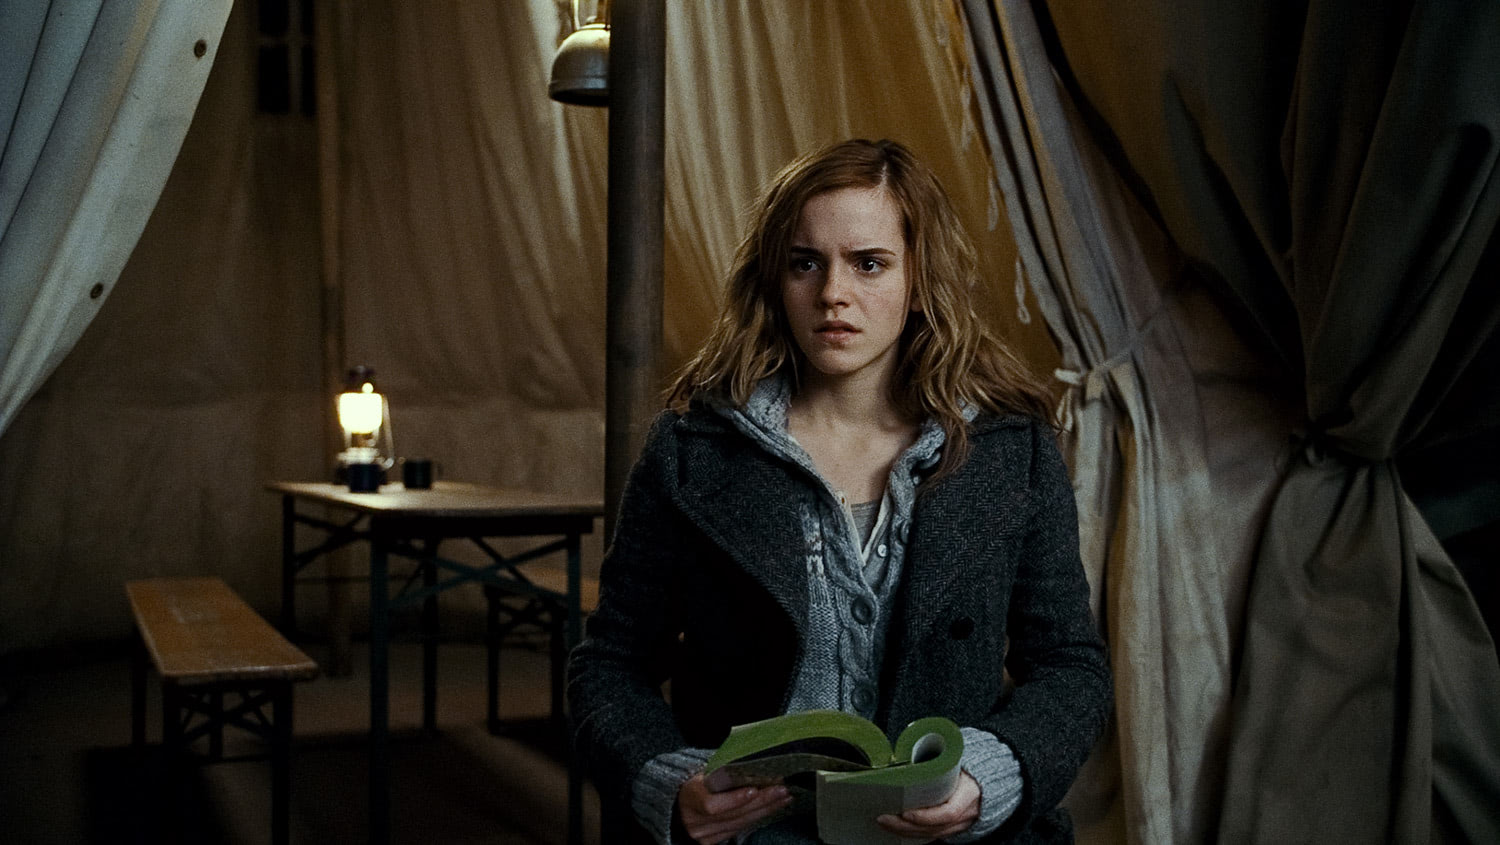 Hermione reads Dumbledore's biography